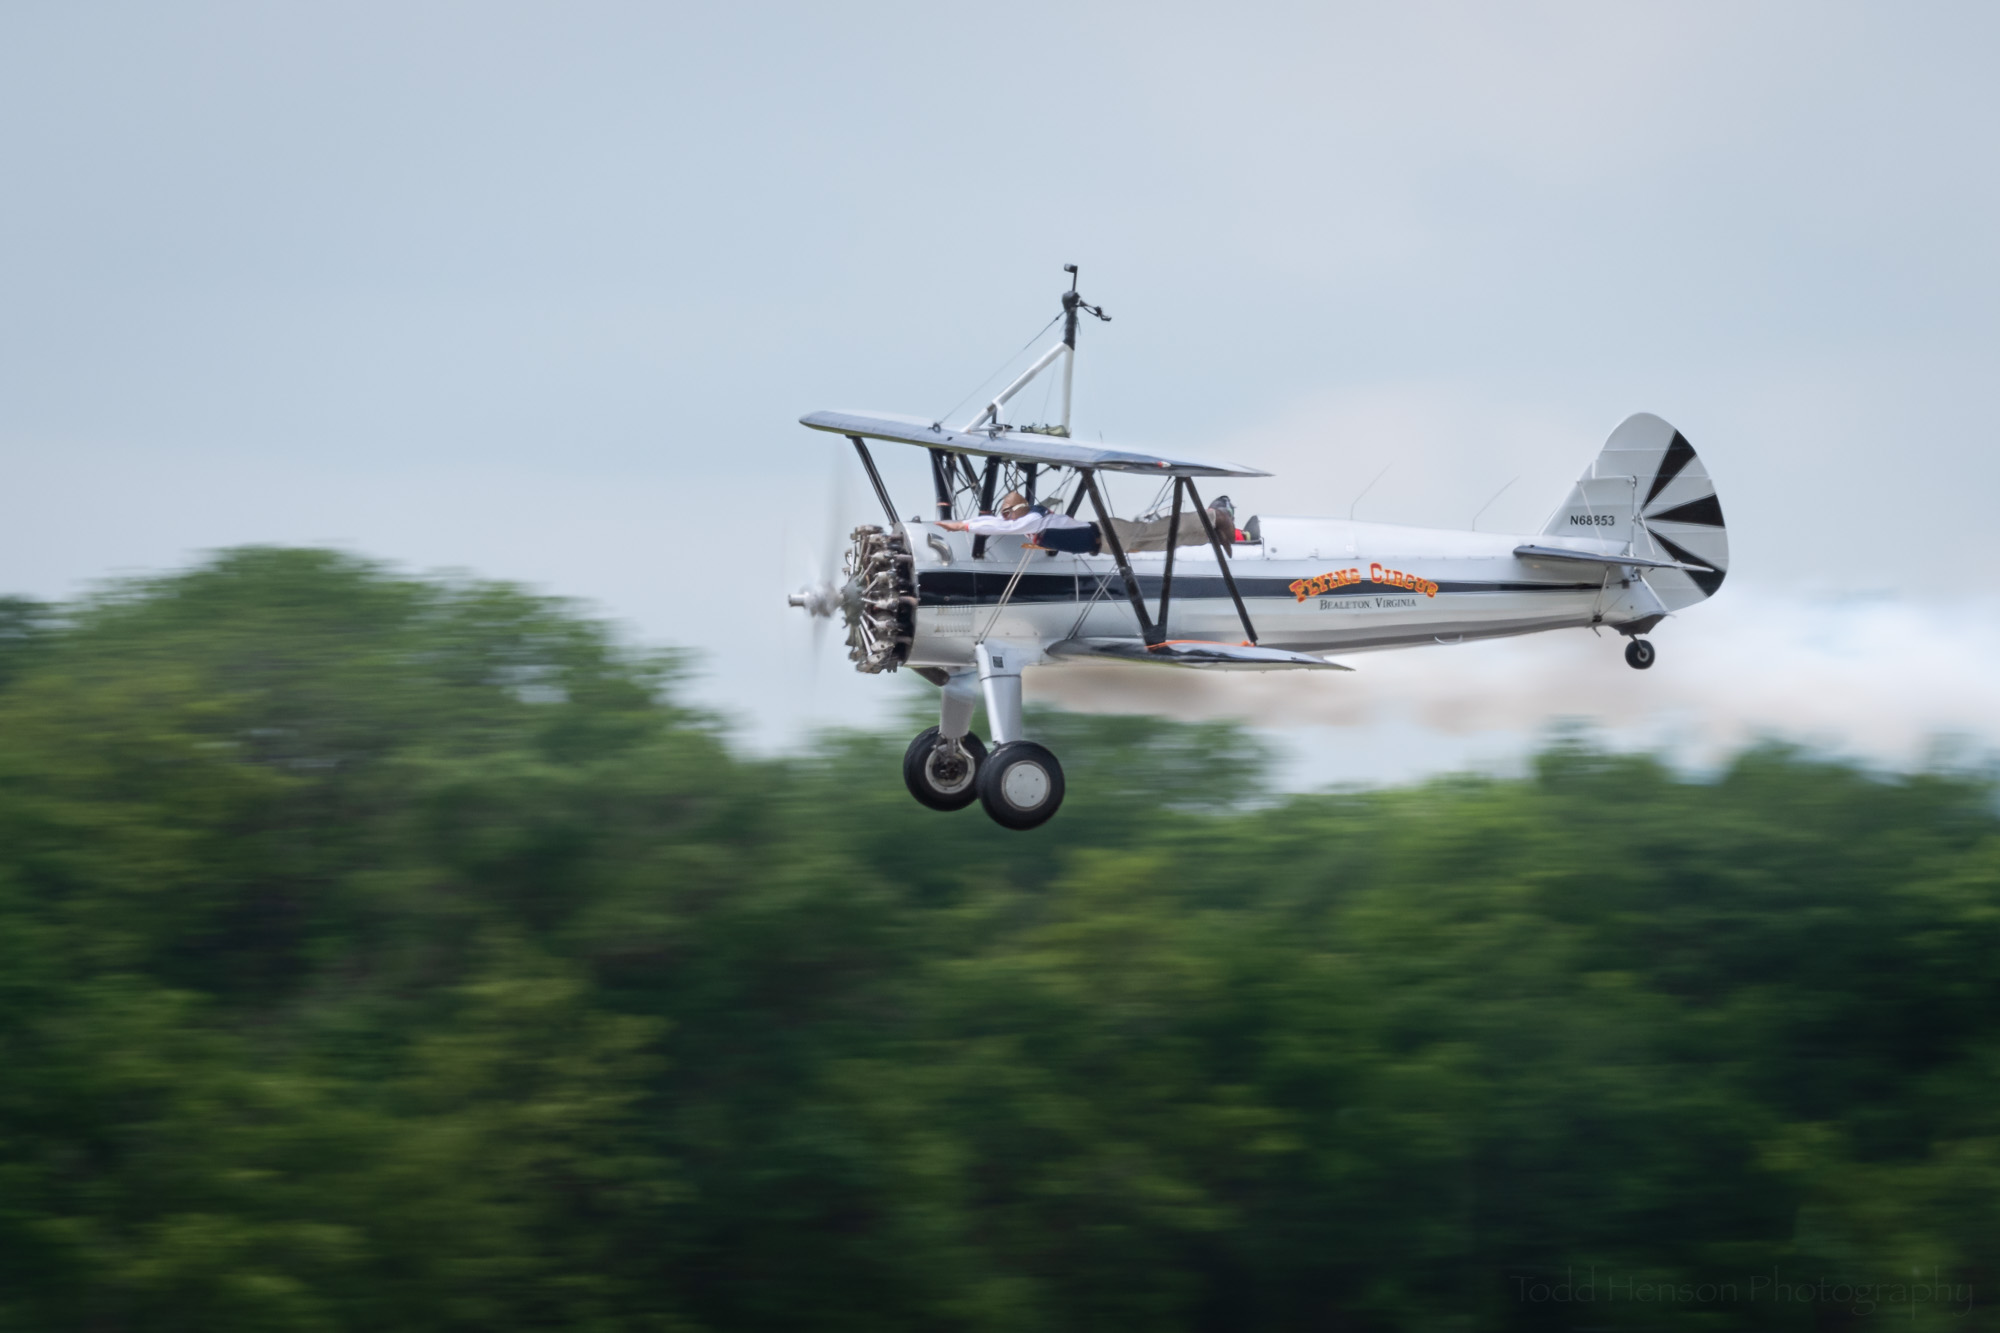 Look closely to see Joe Bender flying like Superman between the wings of the Stearman biplane, flown by Chuck Tippett, of the Bealeton Flying Circus.